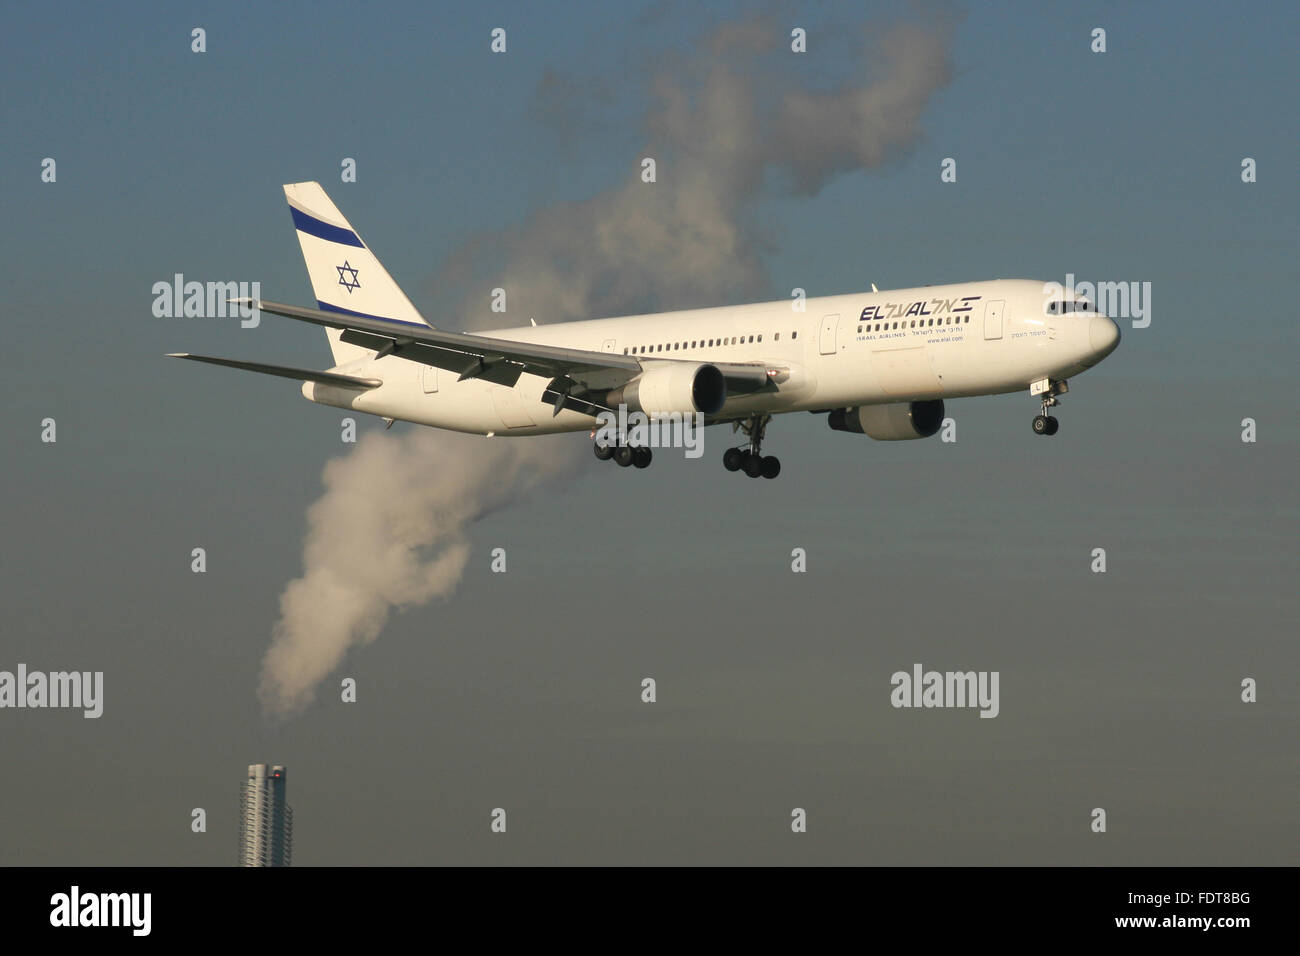 POLLUTION PLANE C02 - Stock Image